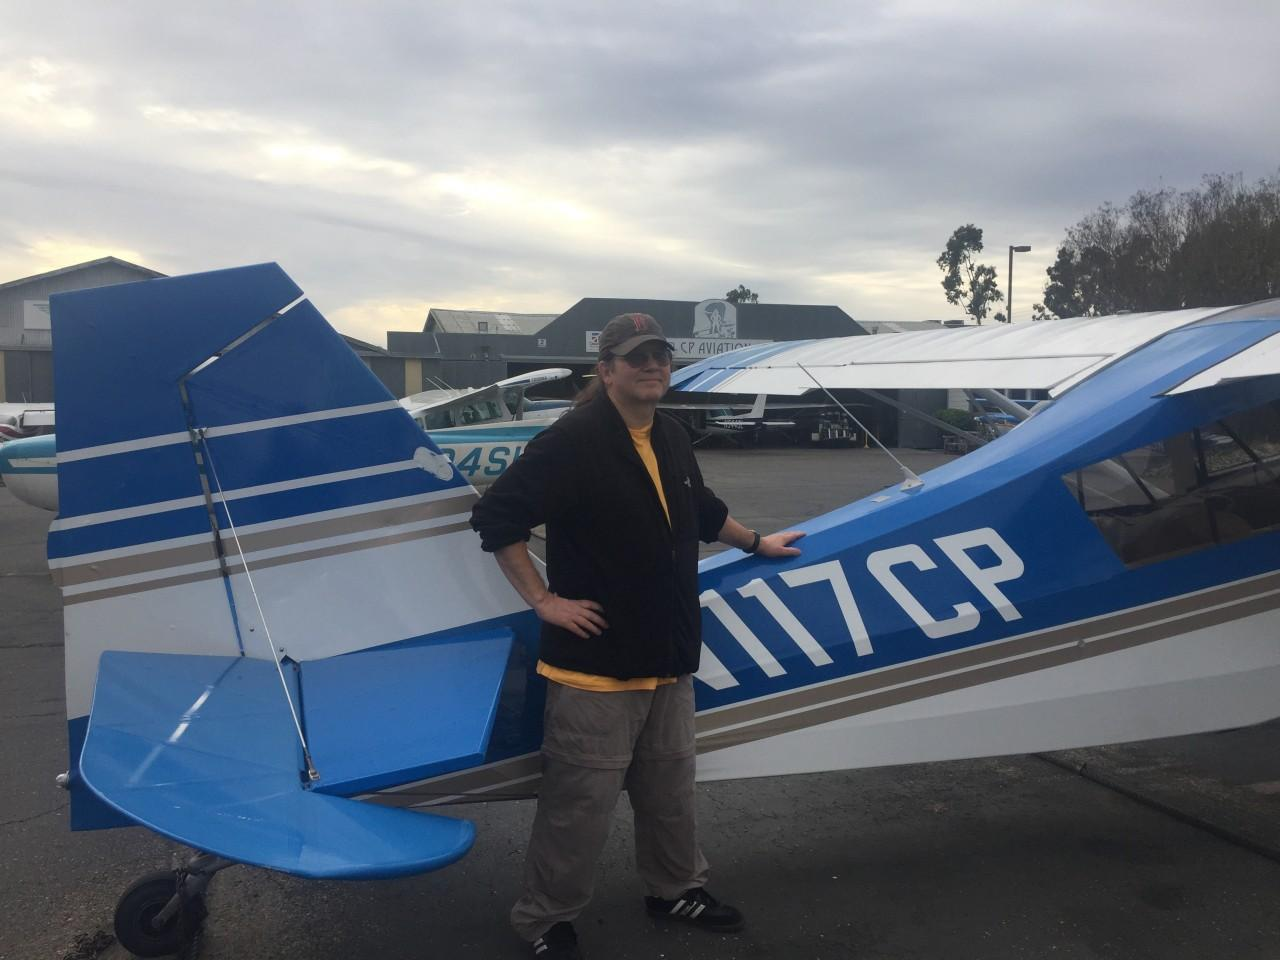 Tailwheel Endorsement - Dan Davison